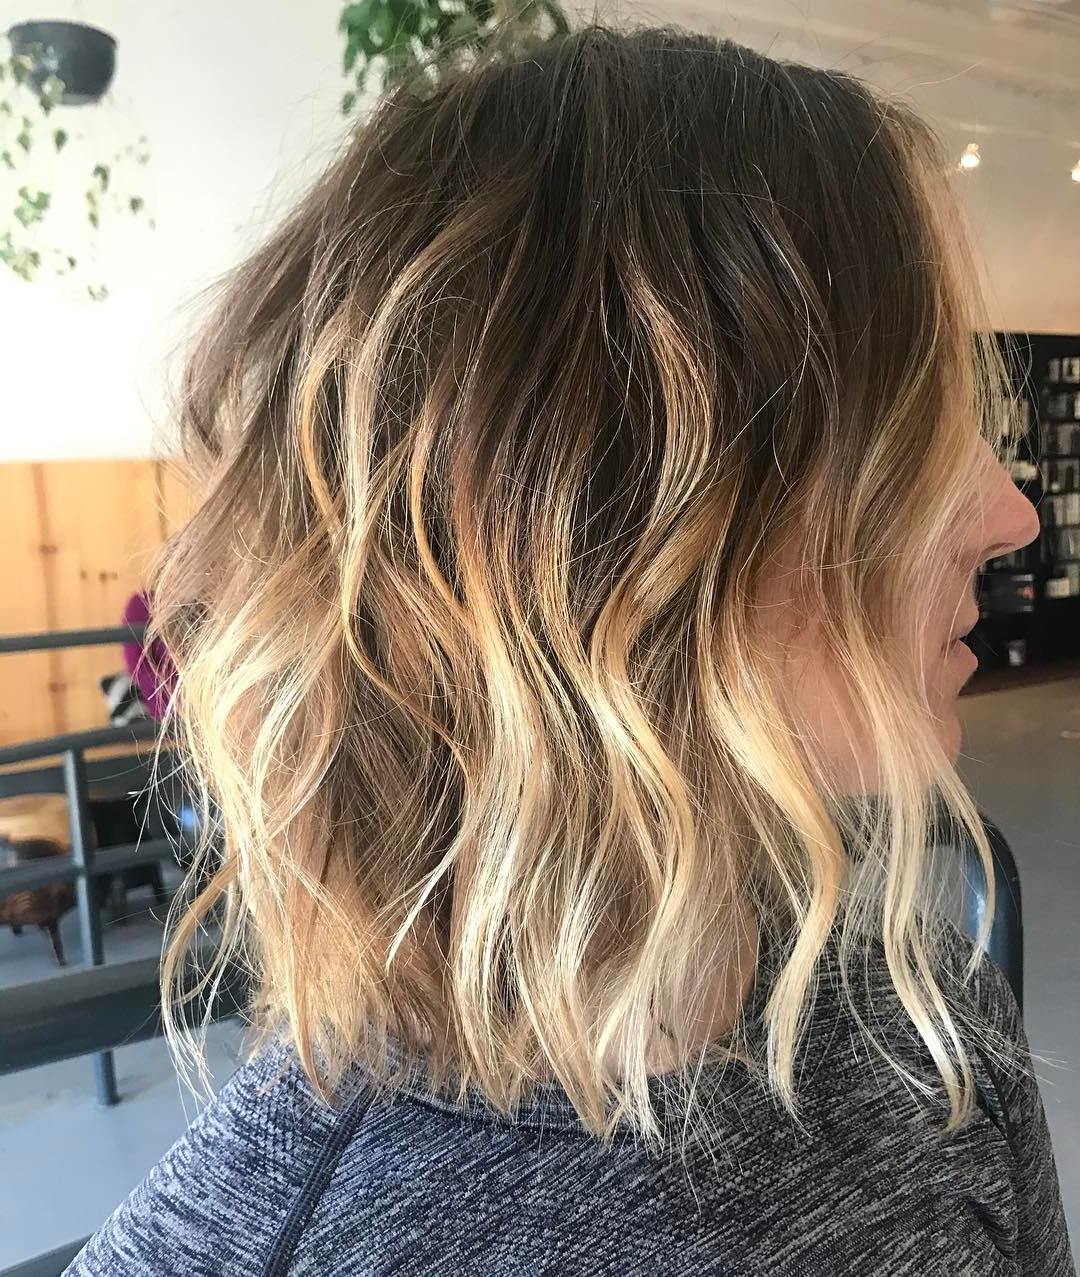 30 Chic Everyday Hairstyles For Shoulder Length Hair 2019 Pertaining To Well Liked Tousled Medium Hairstyles (Gallery 4 of 20)